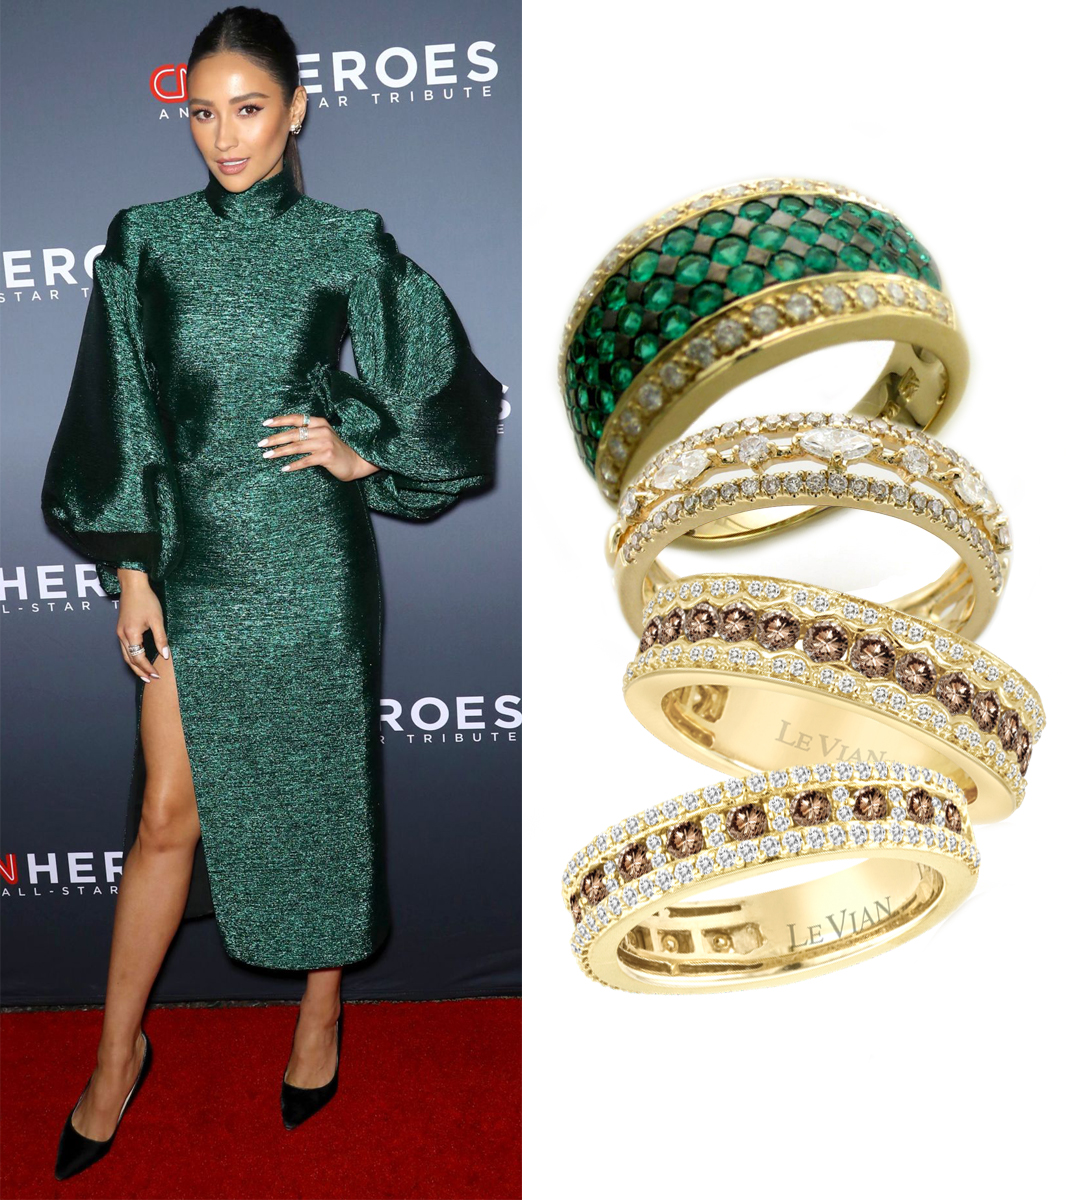 Shay Mitchell Wearing Le Vian Rings at 12th Annual CNN Heroes: An All Star Tribute